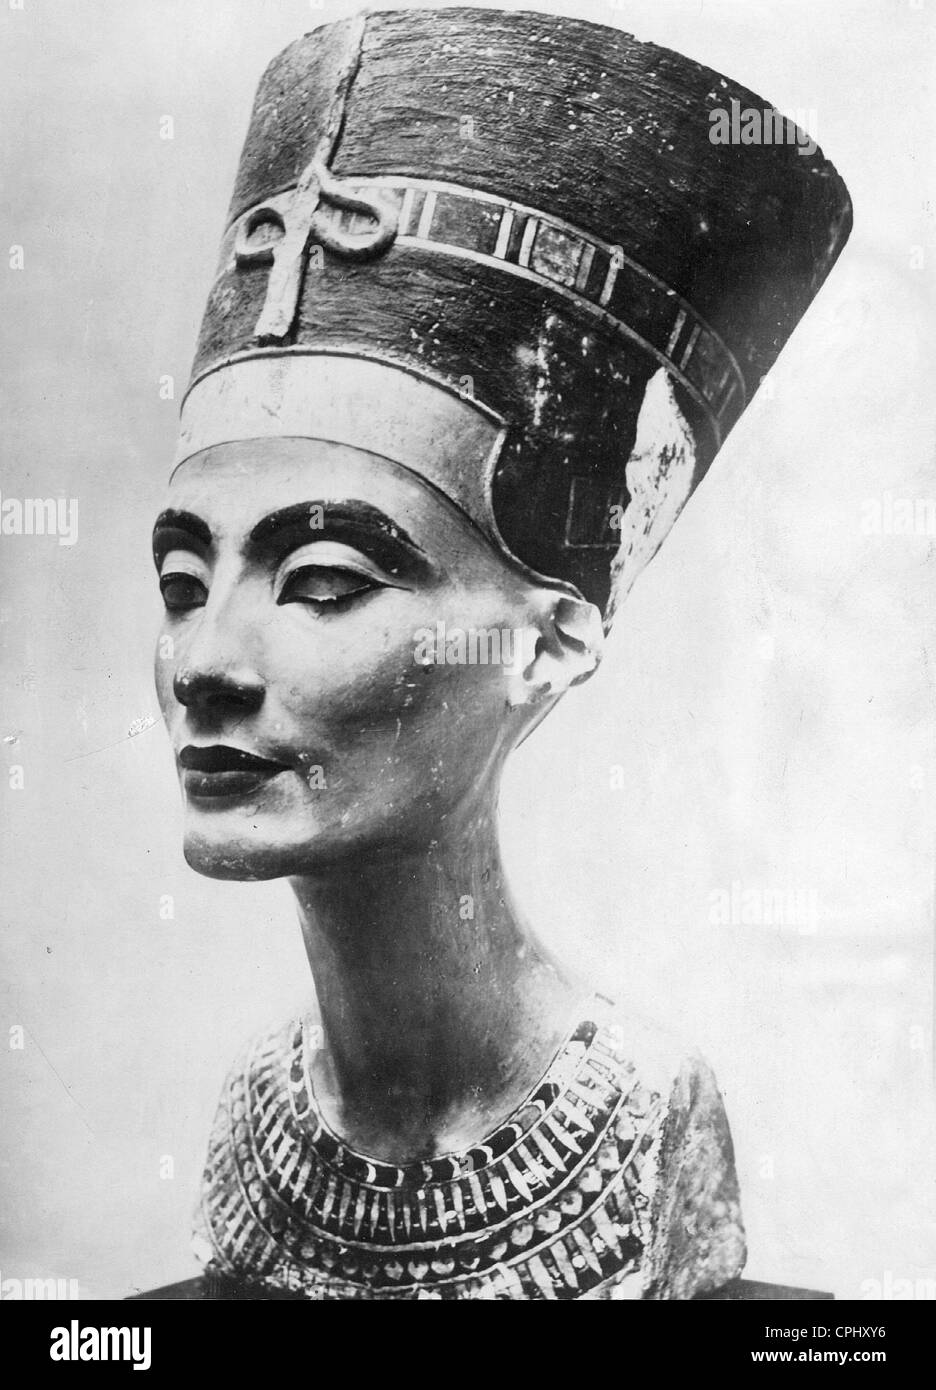 Nefertiti, Egyptian queen in the 14th century BC - Stock Image